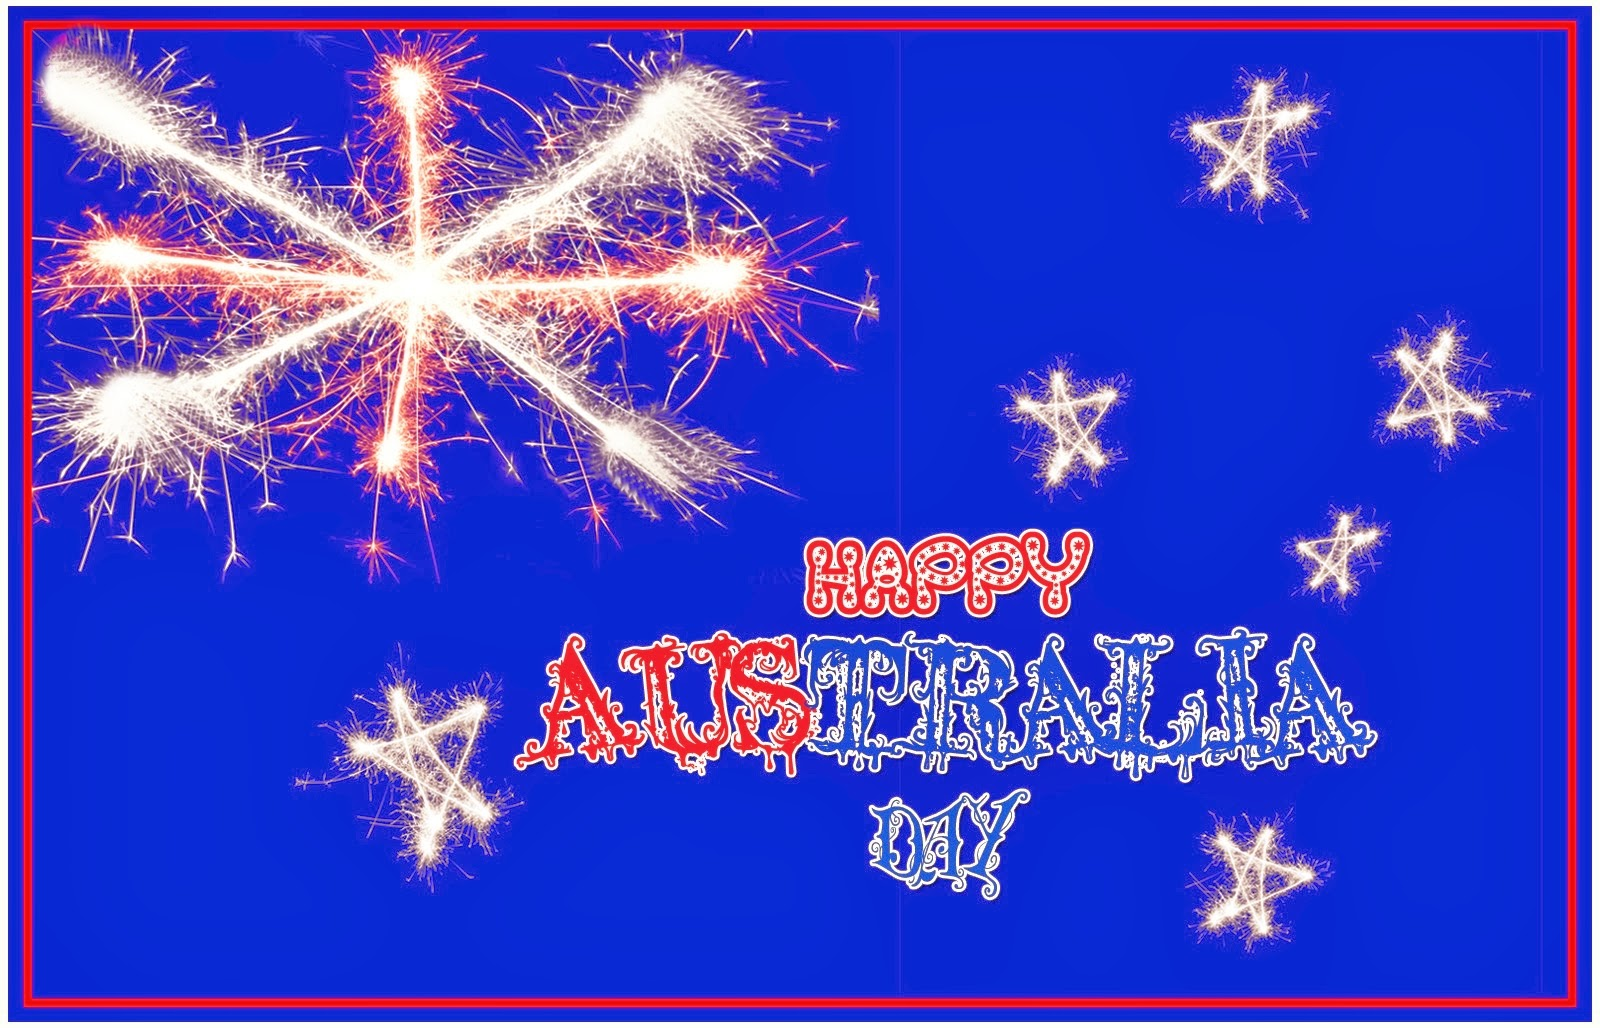 Quotes January Happy Australia Day Hd Wallpapers For Wishes 26 January With